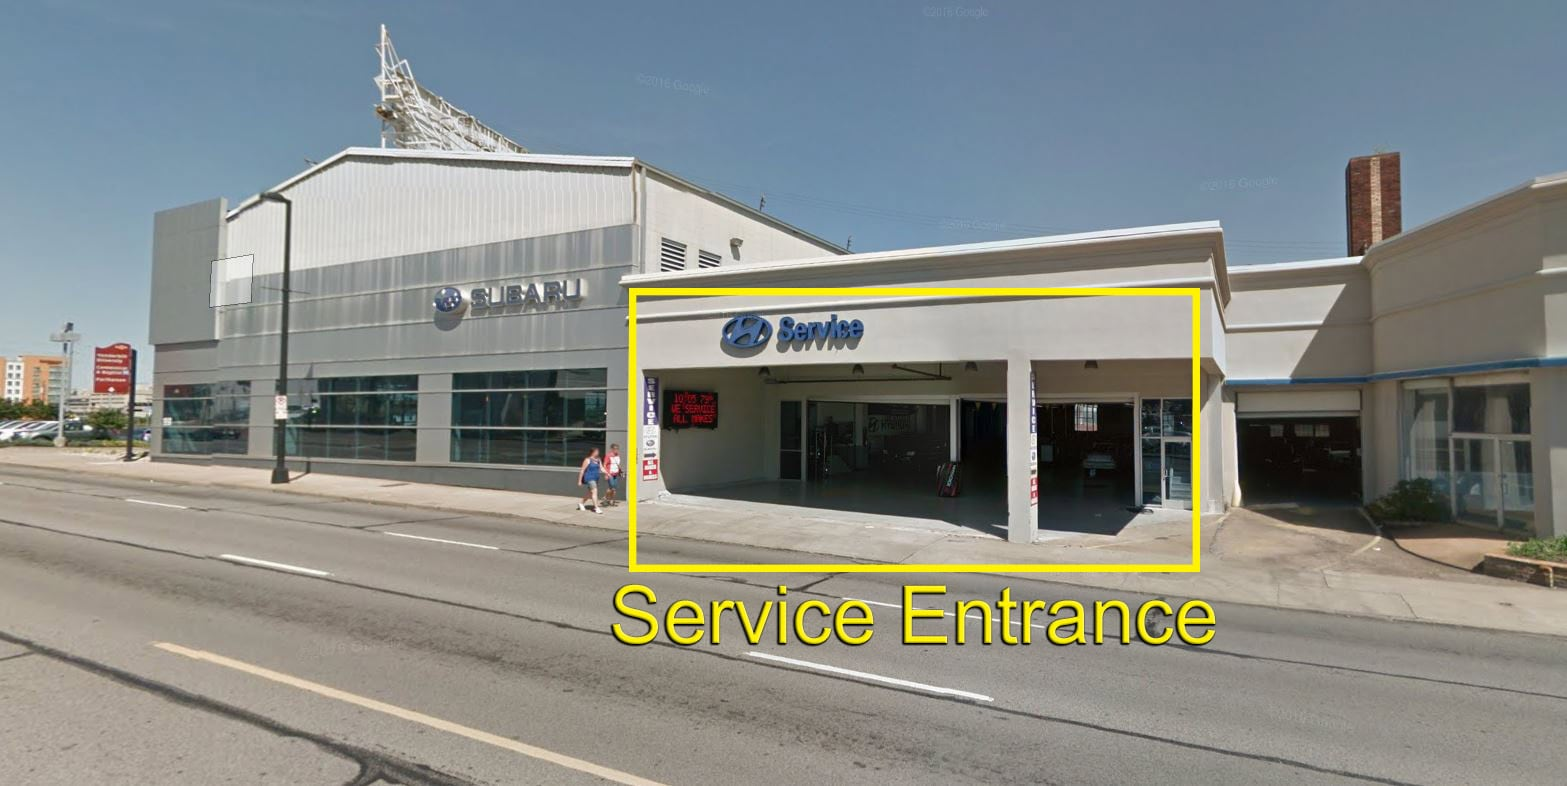 subaru auto service at nashville subaru serving bowling green ky oil change maintenance more. Black Bedroom Furniture Sets. Home Design Ideas